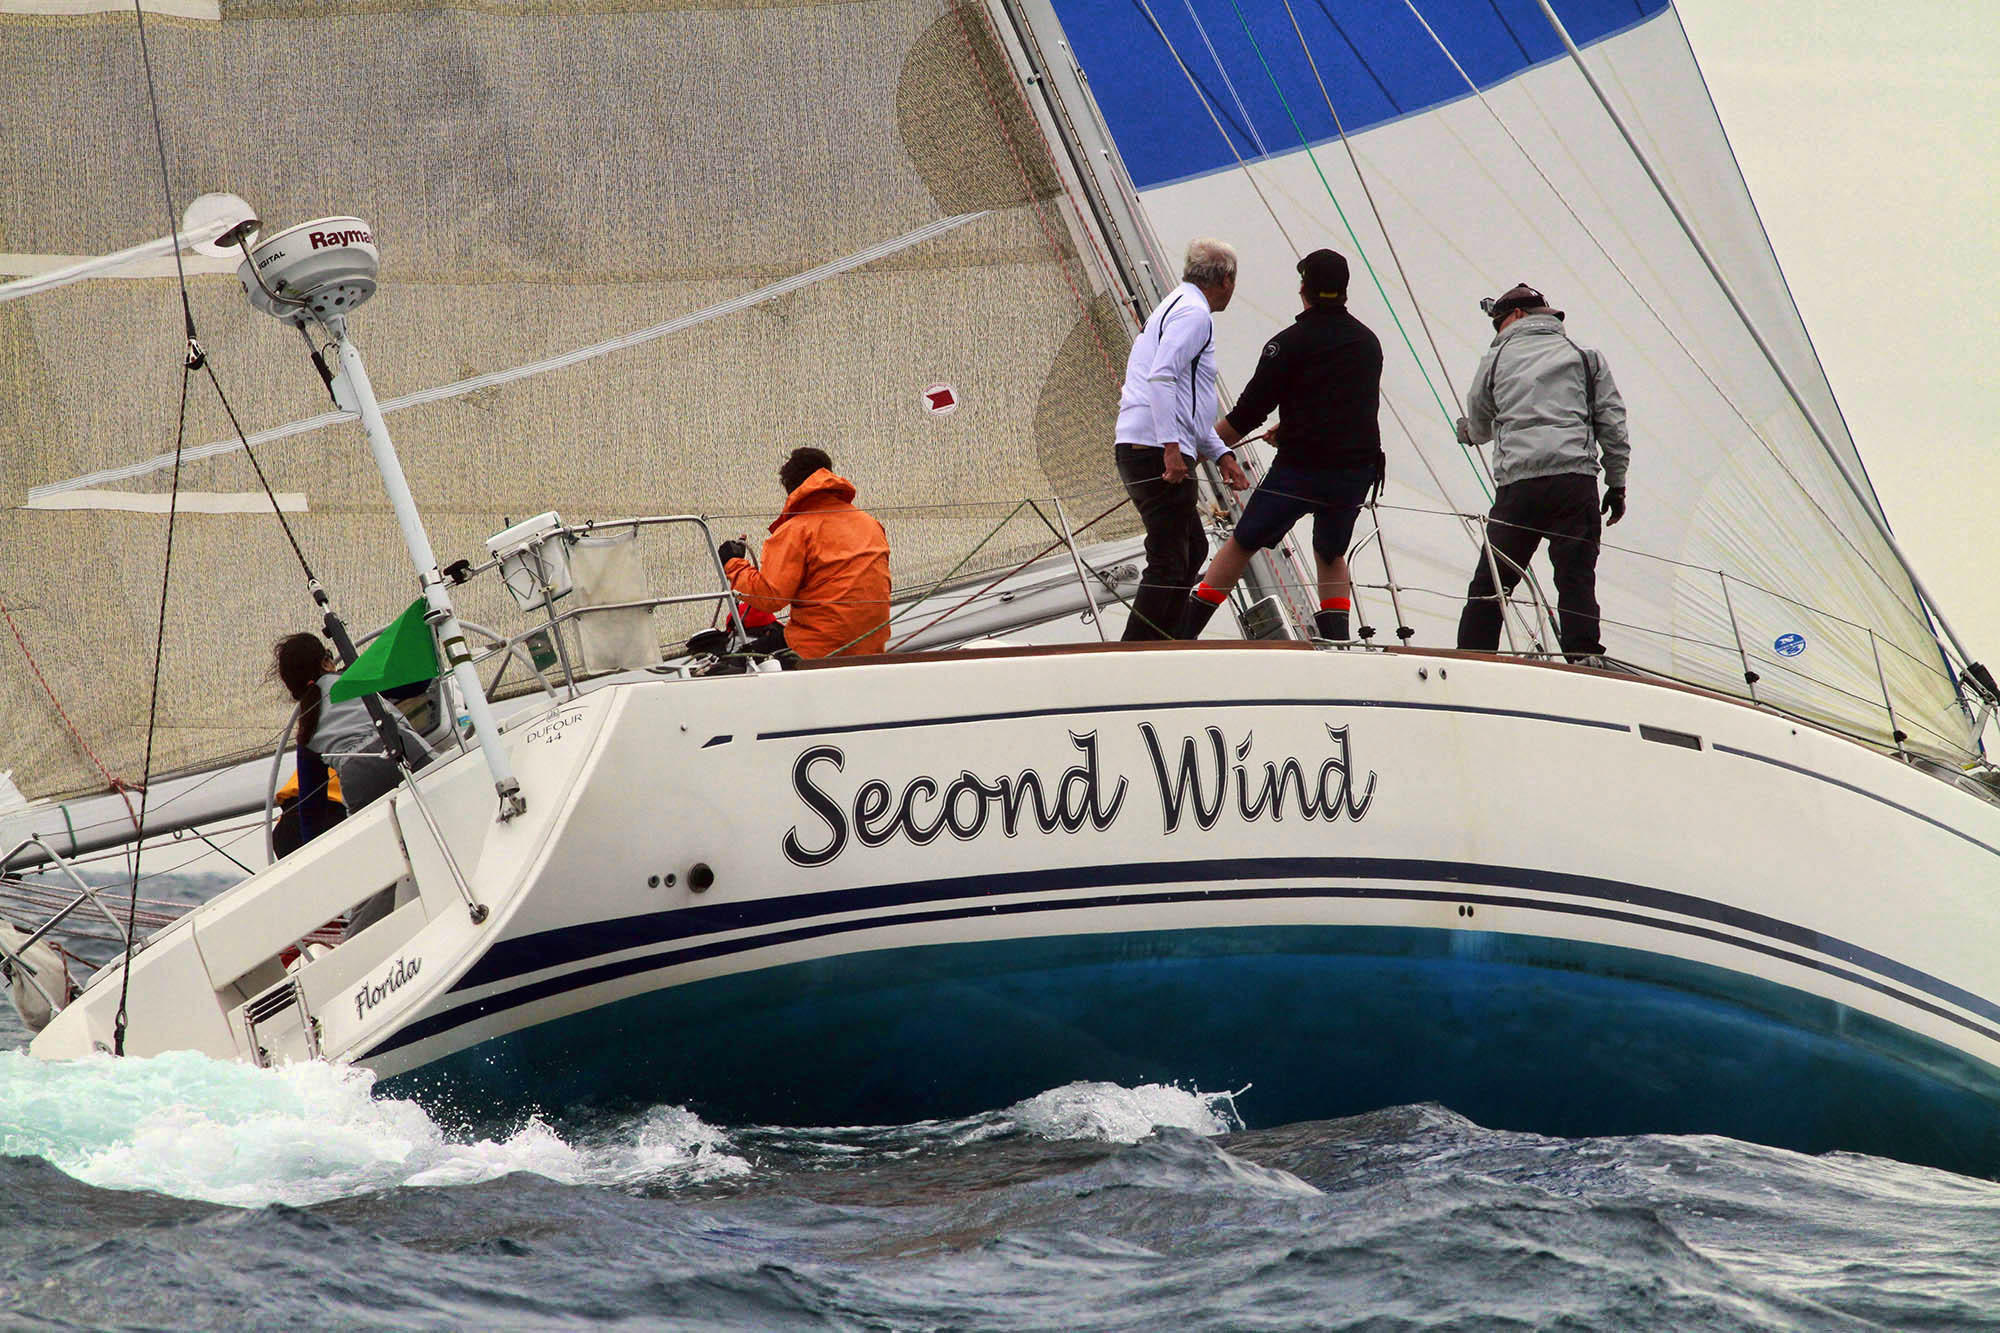 The crew of the Second Wind starts the Lauderdale to Key West sailing race.